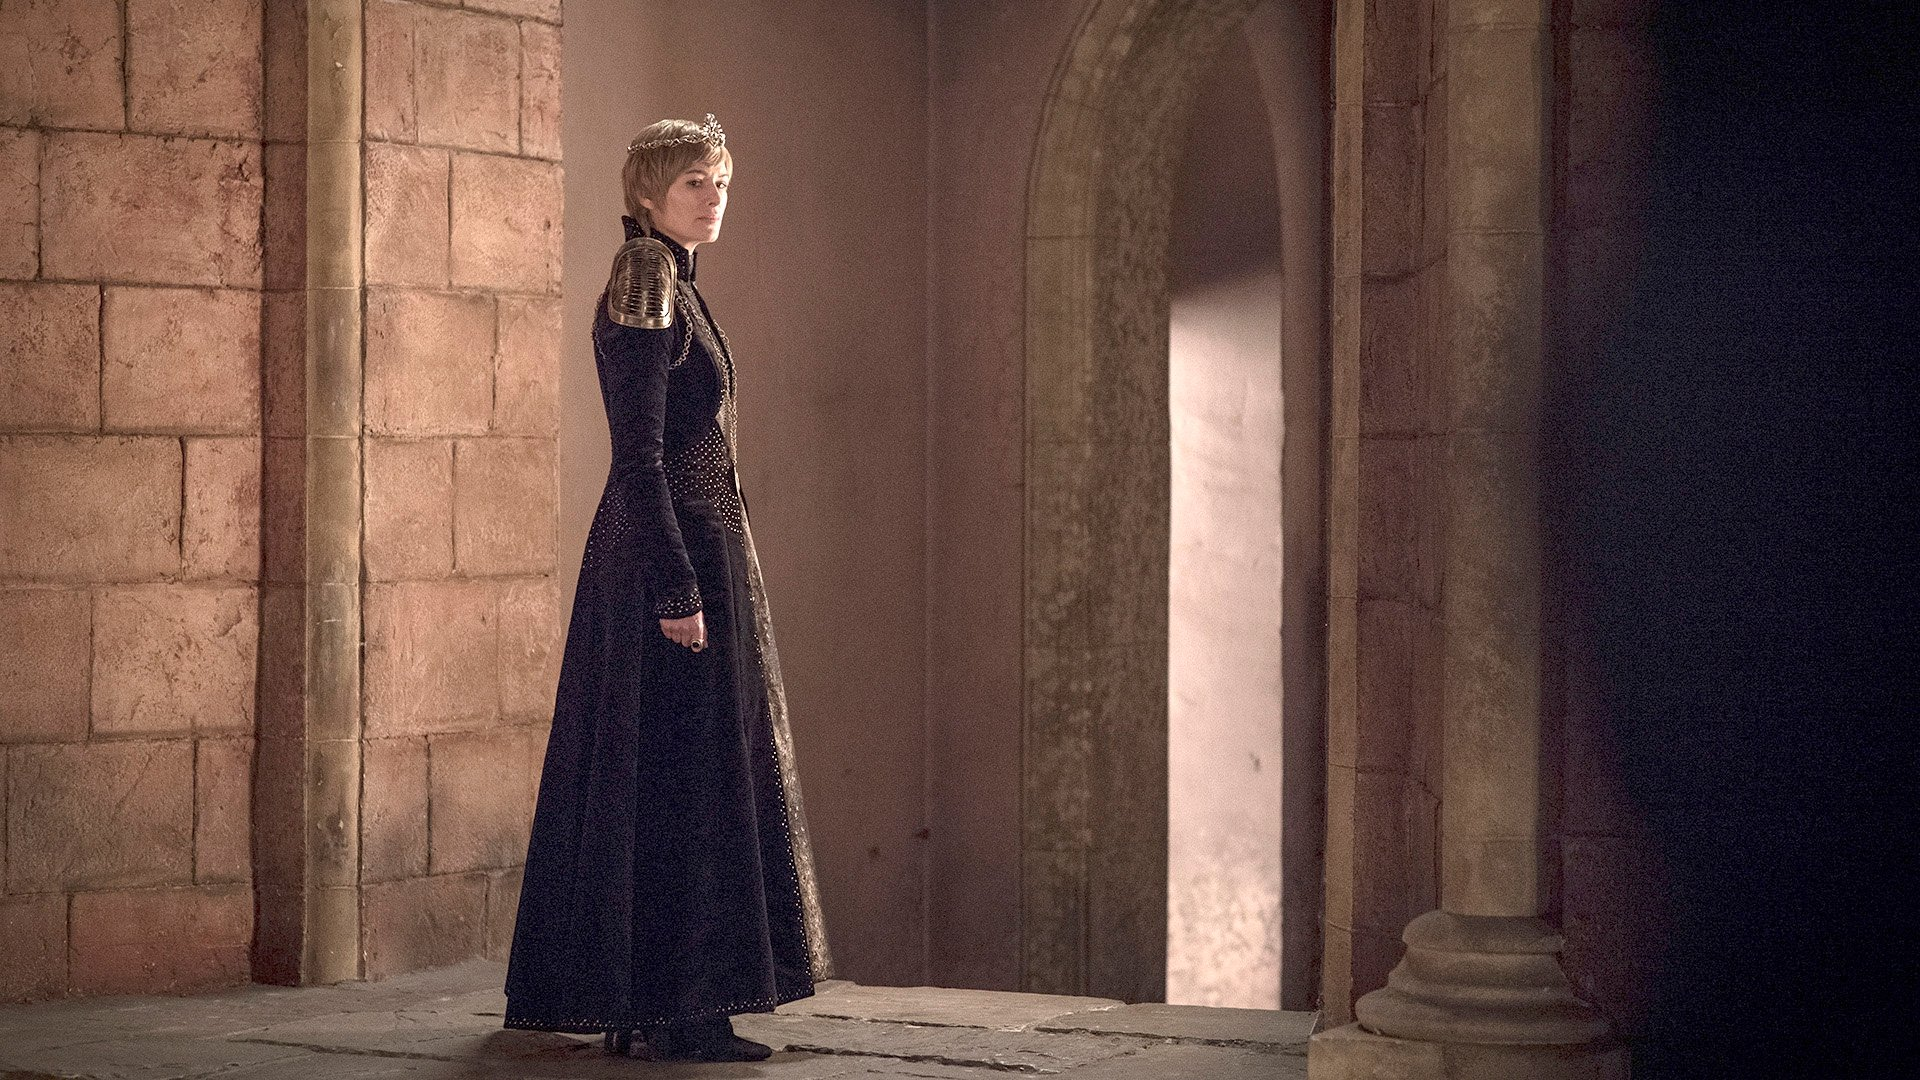 Cersei Lannister Season 8 Wallpaper Windows Mode